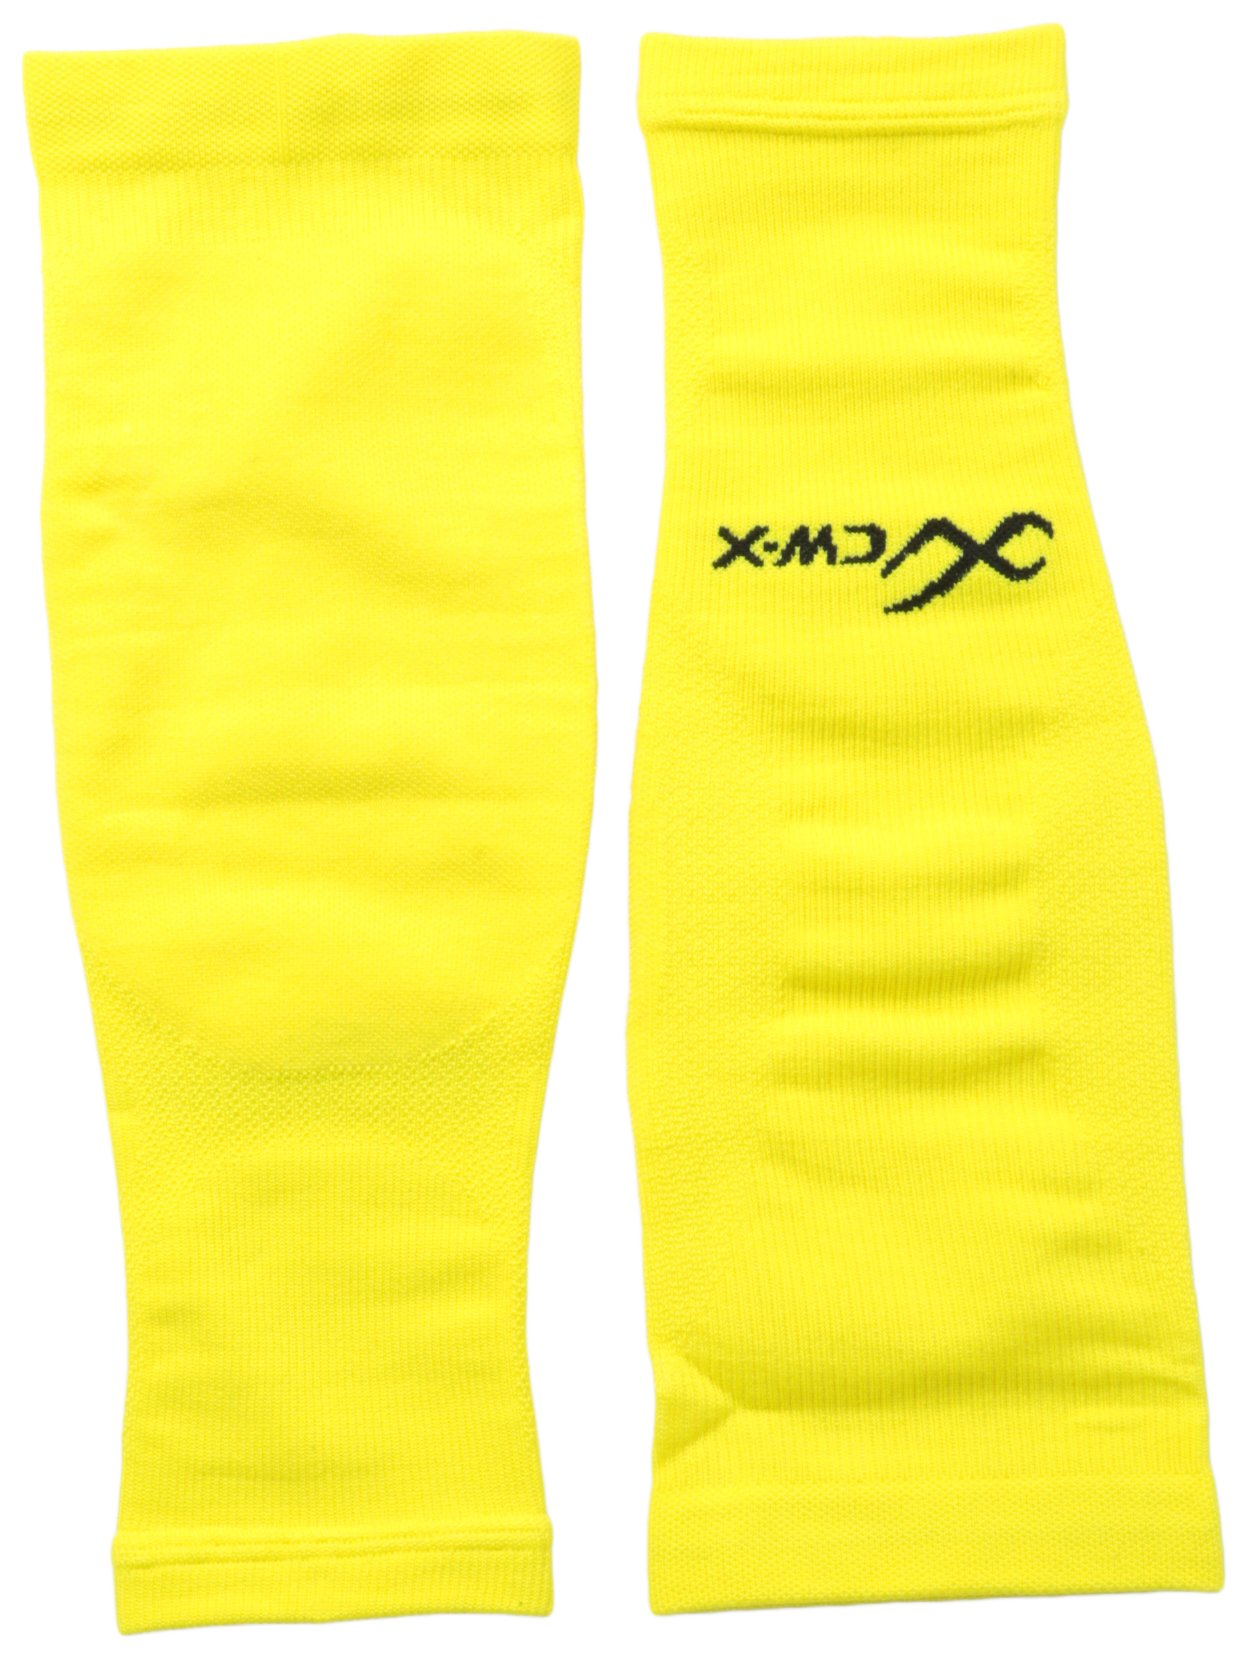 CW-X Conditioning Wear Compression Sleeves, Yellow, Large